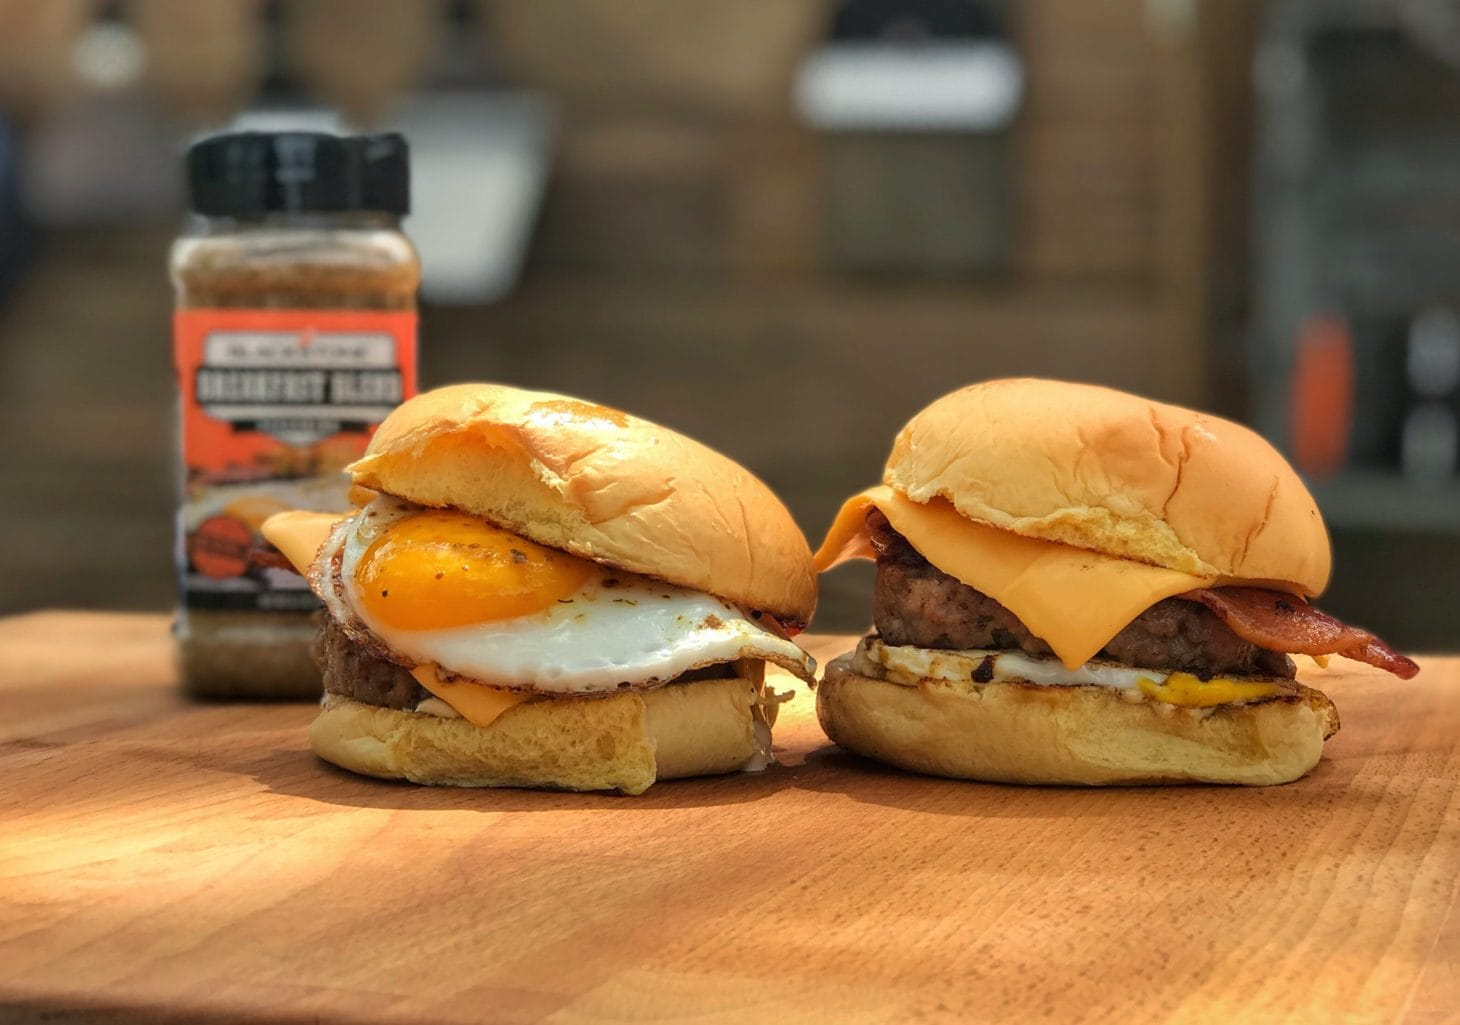 Two breakfast sandwiches on wooden table